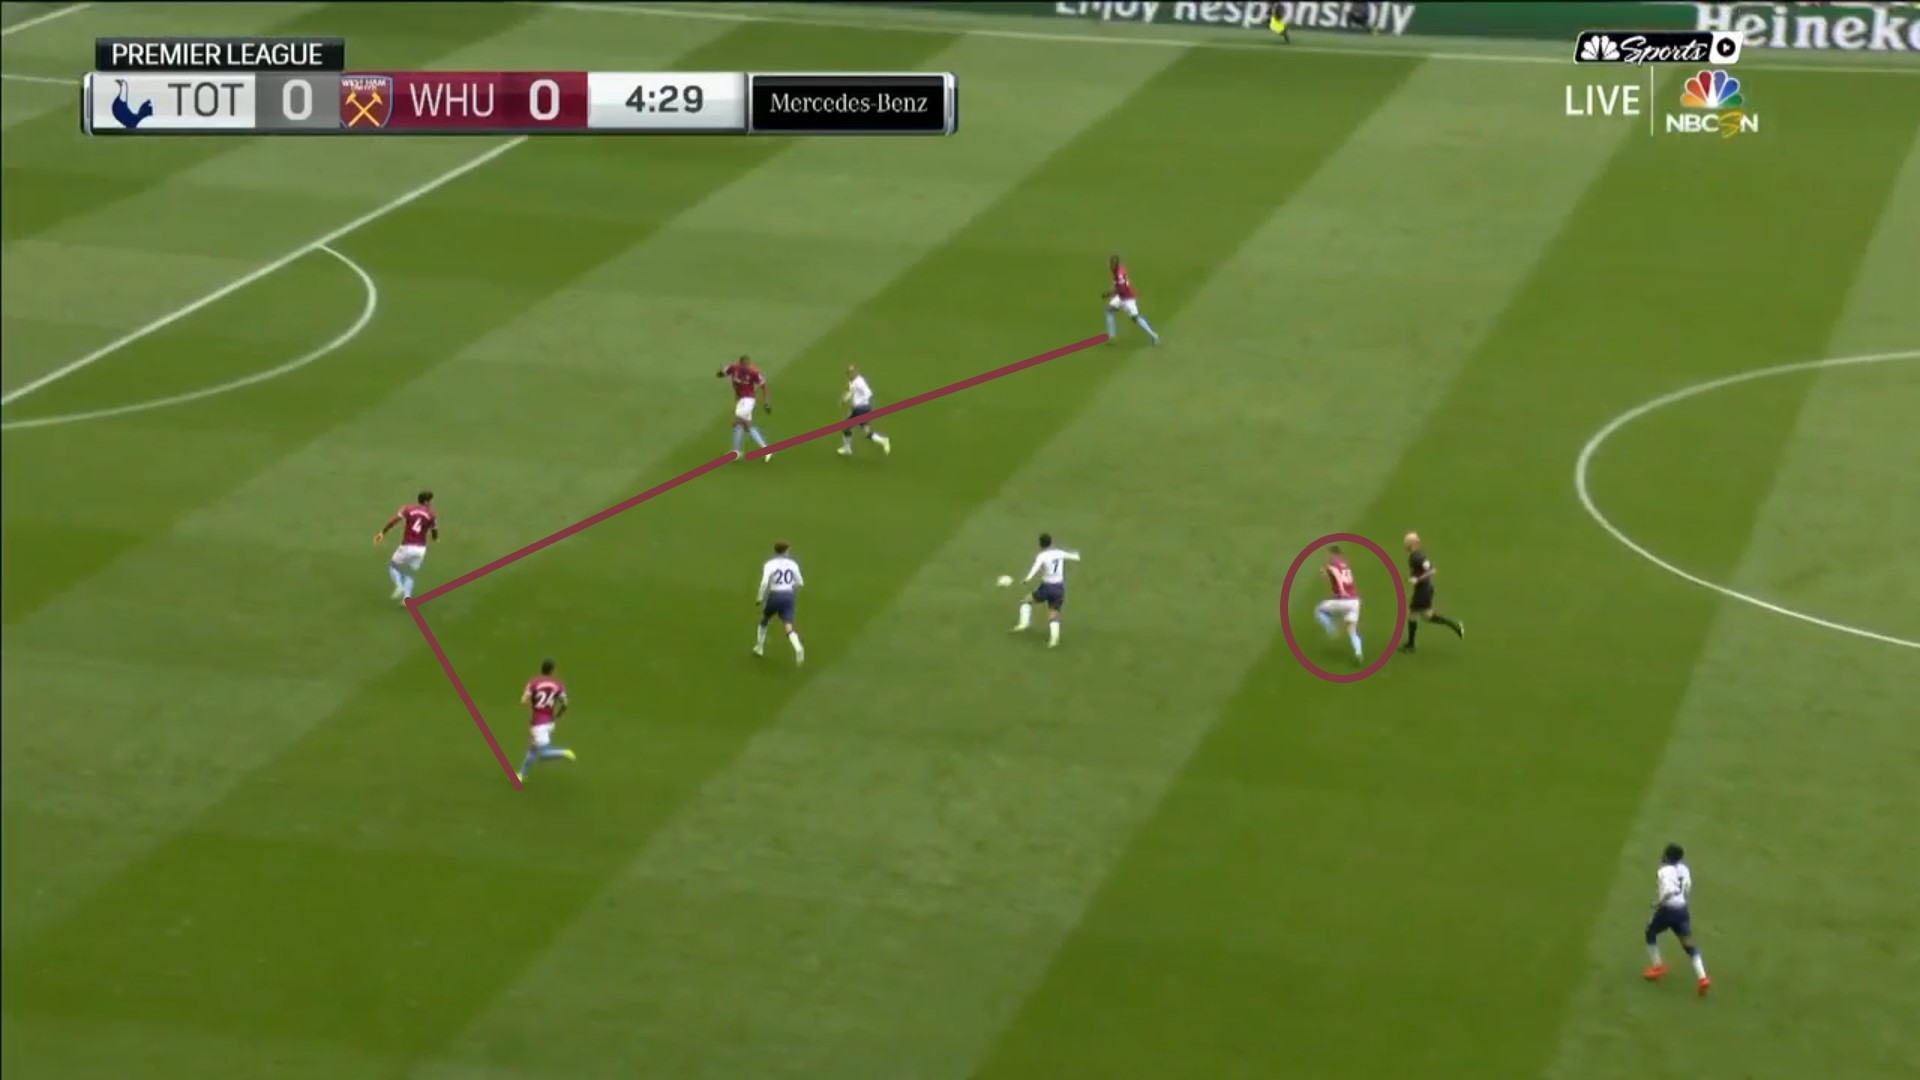 Premier League 2018/19: Tottenham vs West Ham Tactical Analysis Statistics